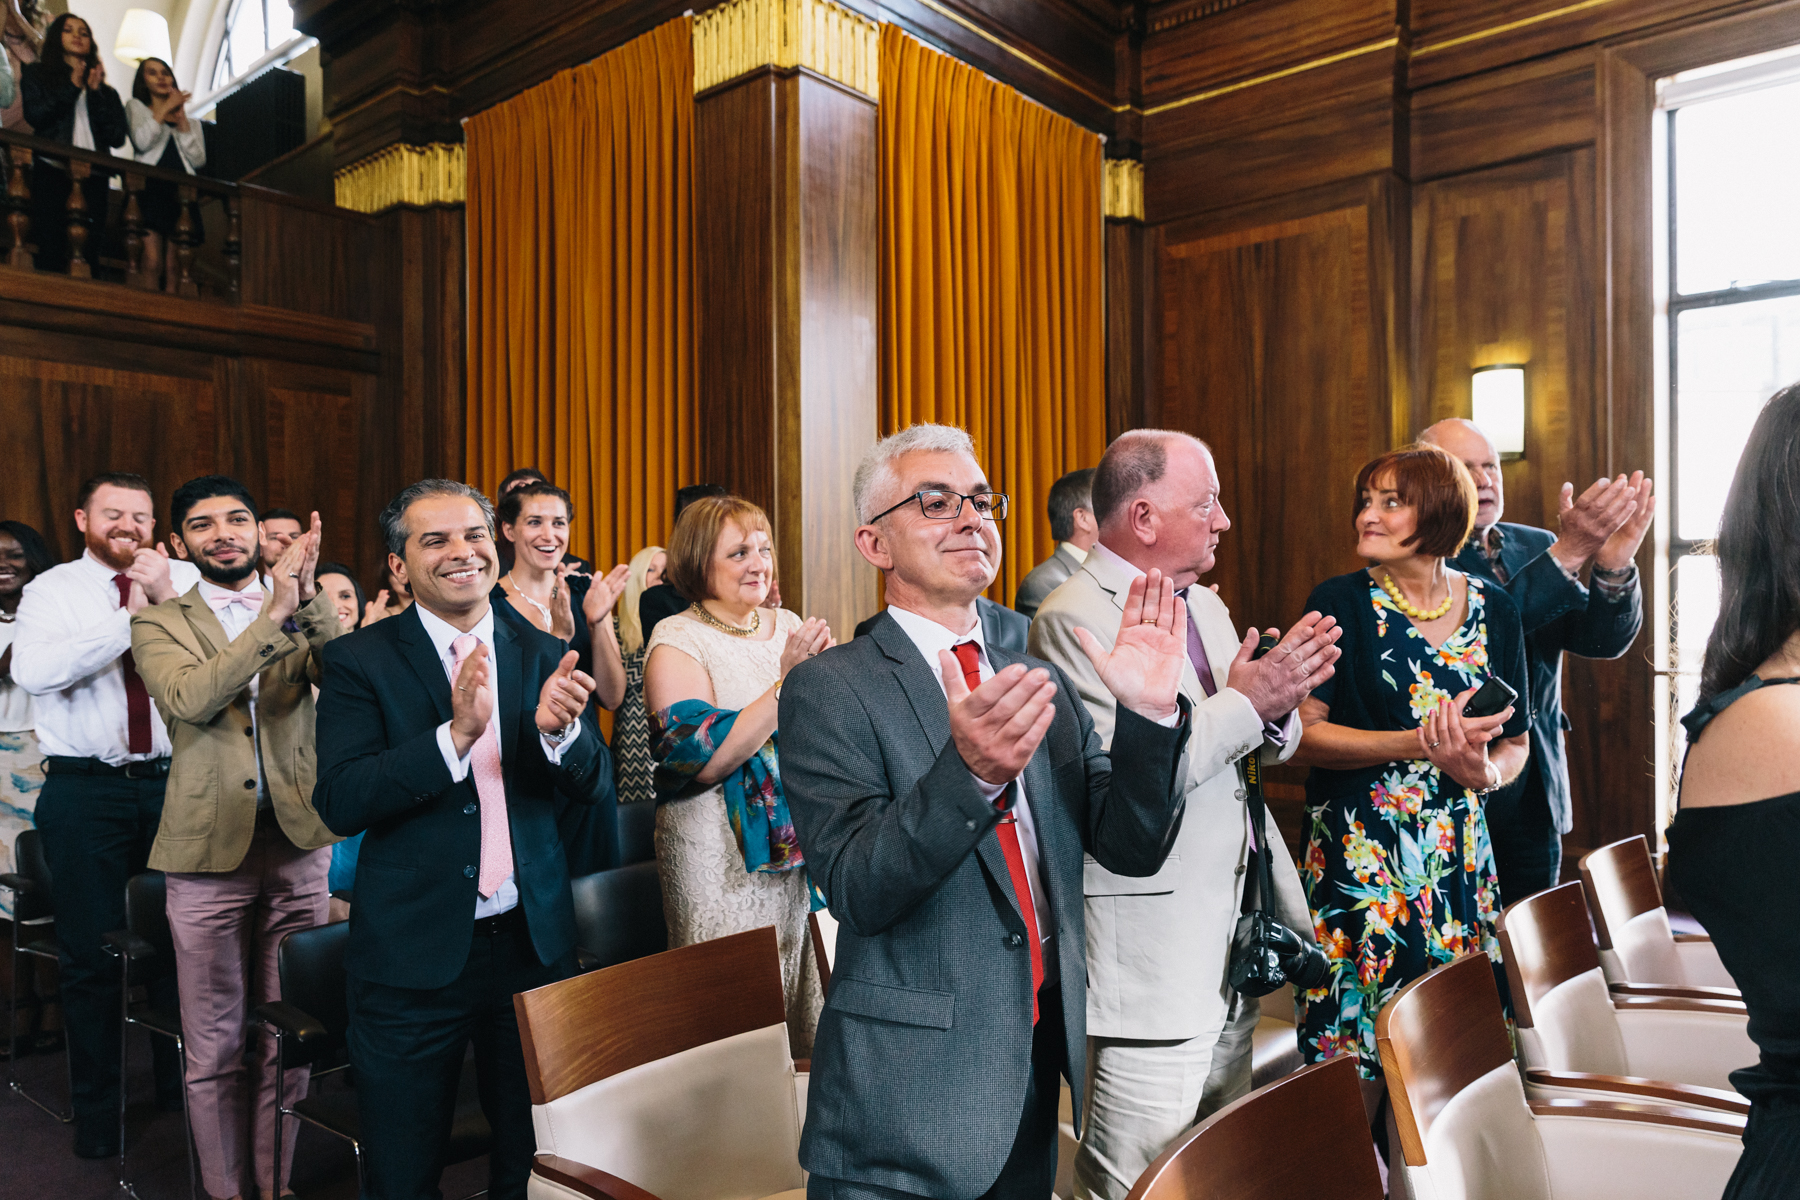 STOKE NEWINGTON TOWN HALL WEDDING-21